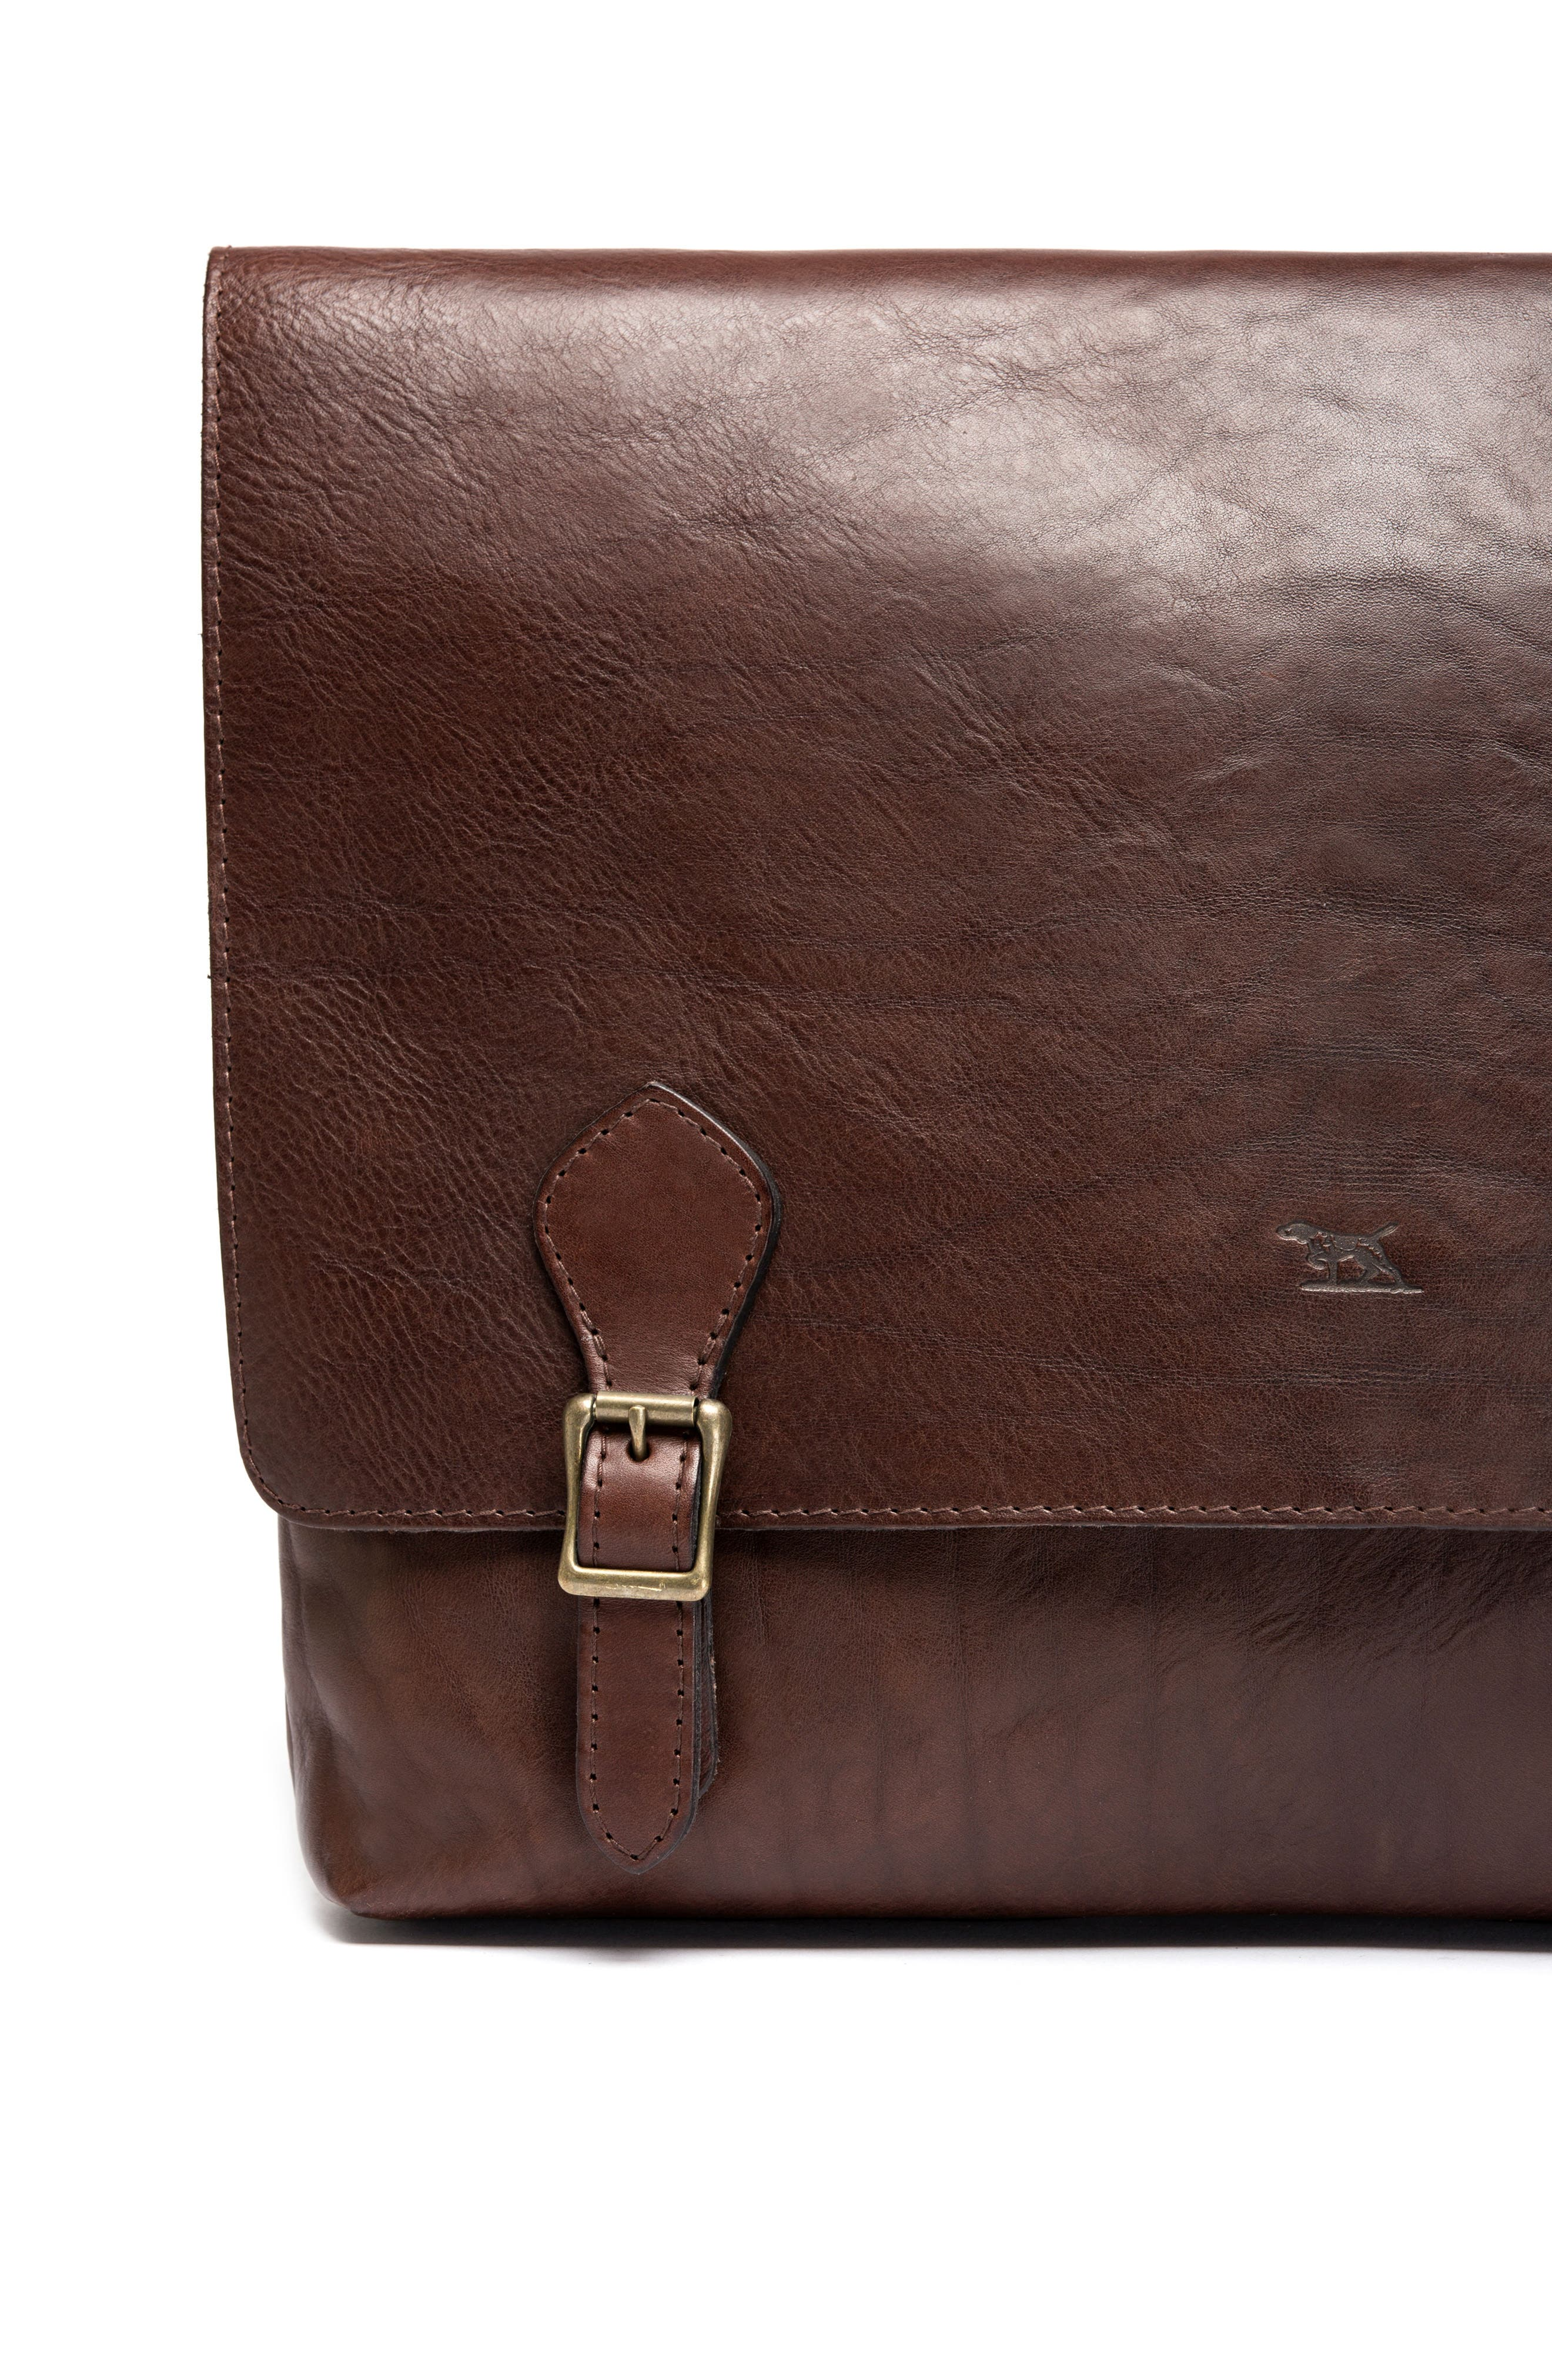 Woodstock Leather Satchel,                             Alternate thumbnail 7, color,                             Cocoa